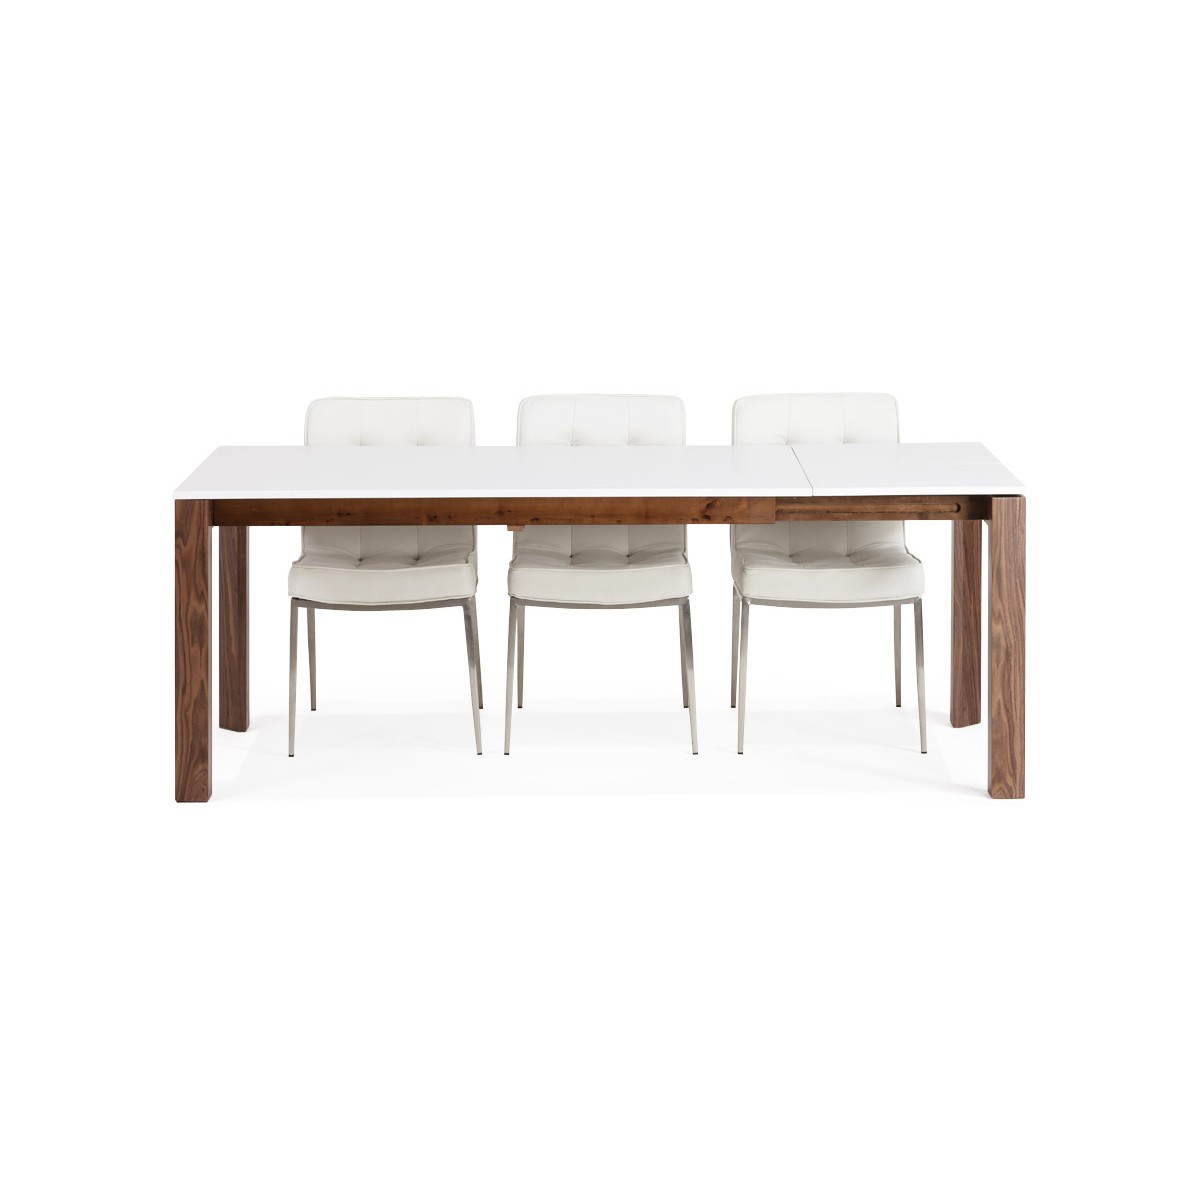 Table bois blanc for Table rectangulaire a rallonge